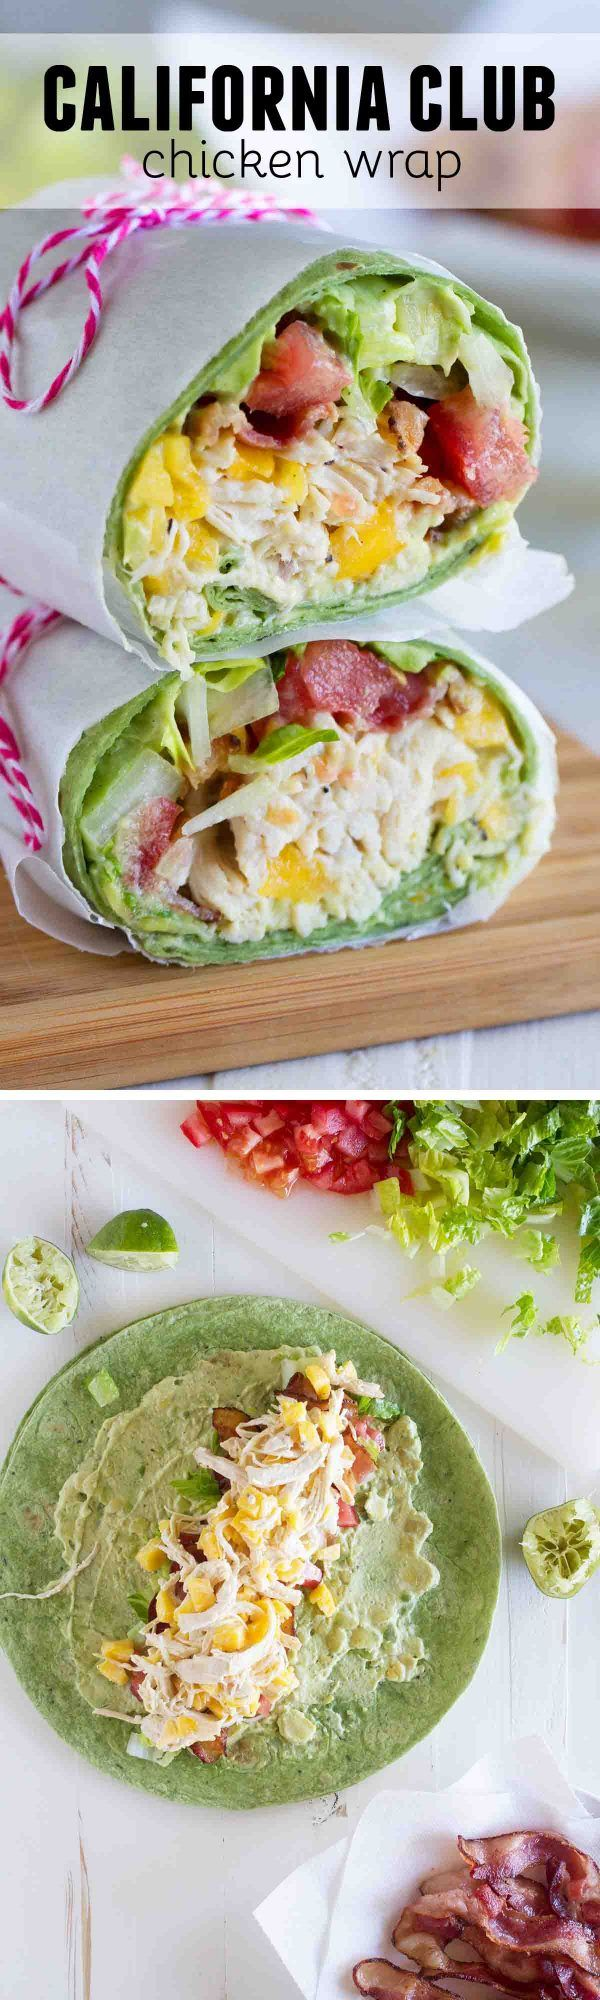 Shredded chicken, mango, avocado and bacon are the stars in this easy California Club Chicken Wrap that is perfect for a weeknight.: